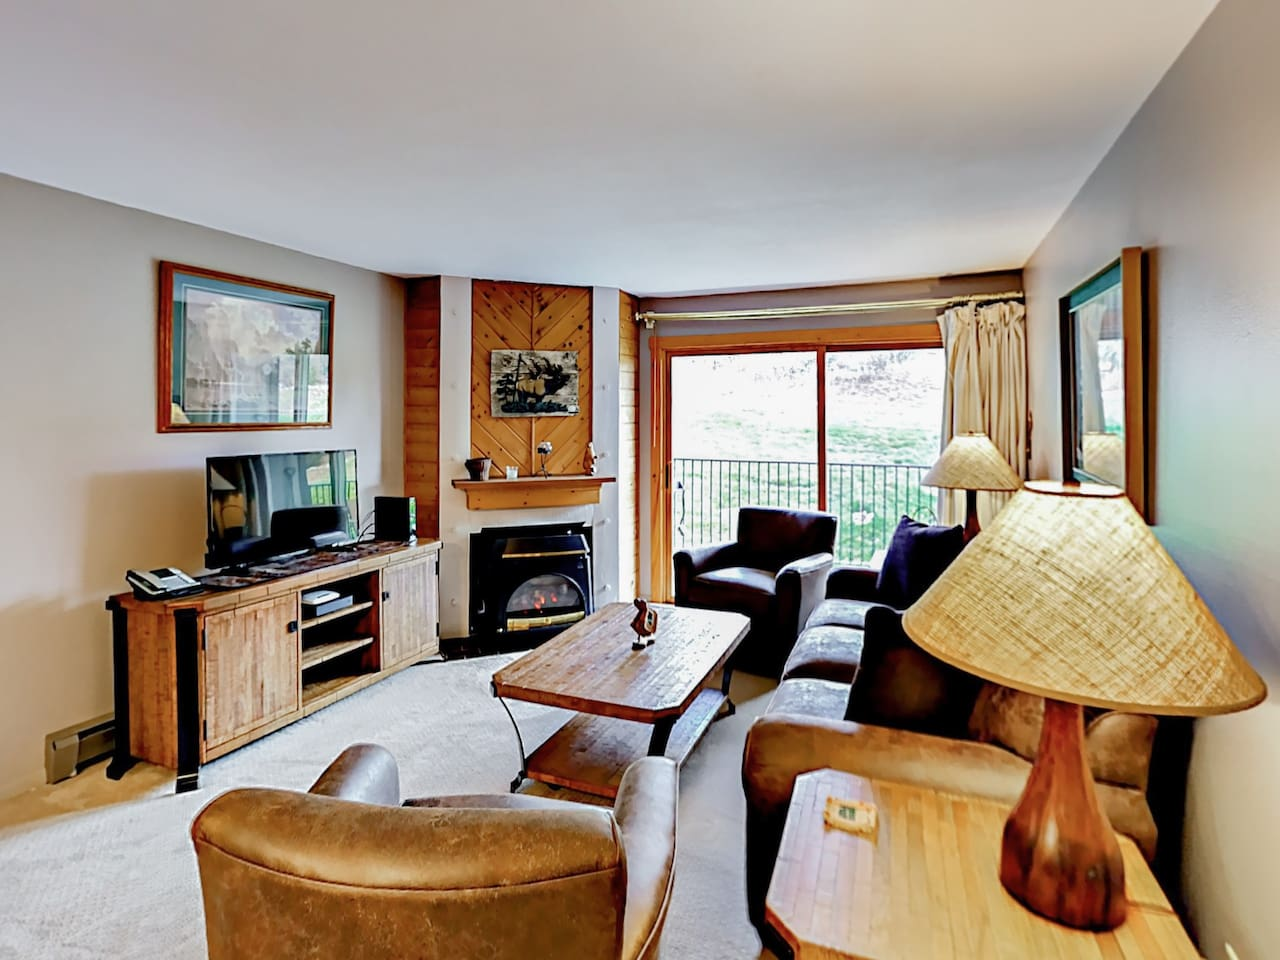 Welcome to Steamboat Springs! Your condo is professionally managed by TurnKey Vacation Rentals.